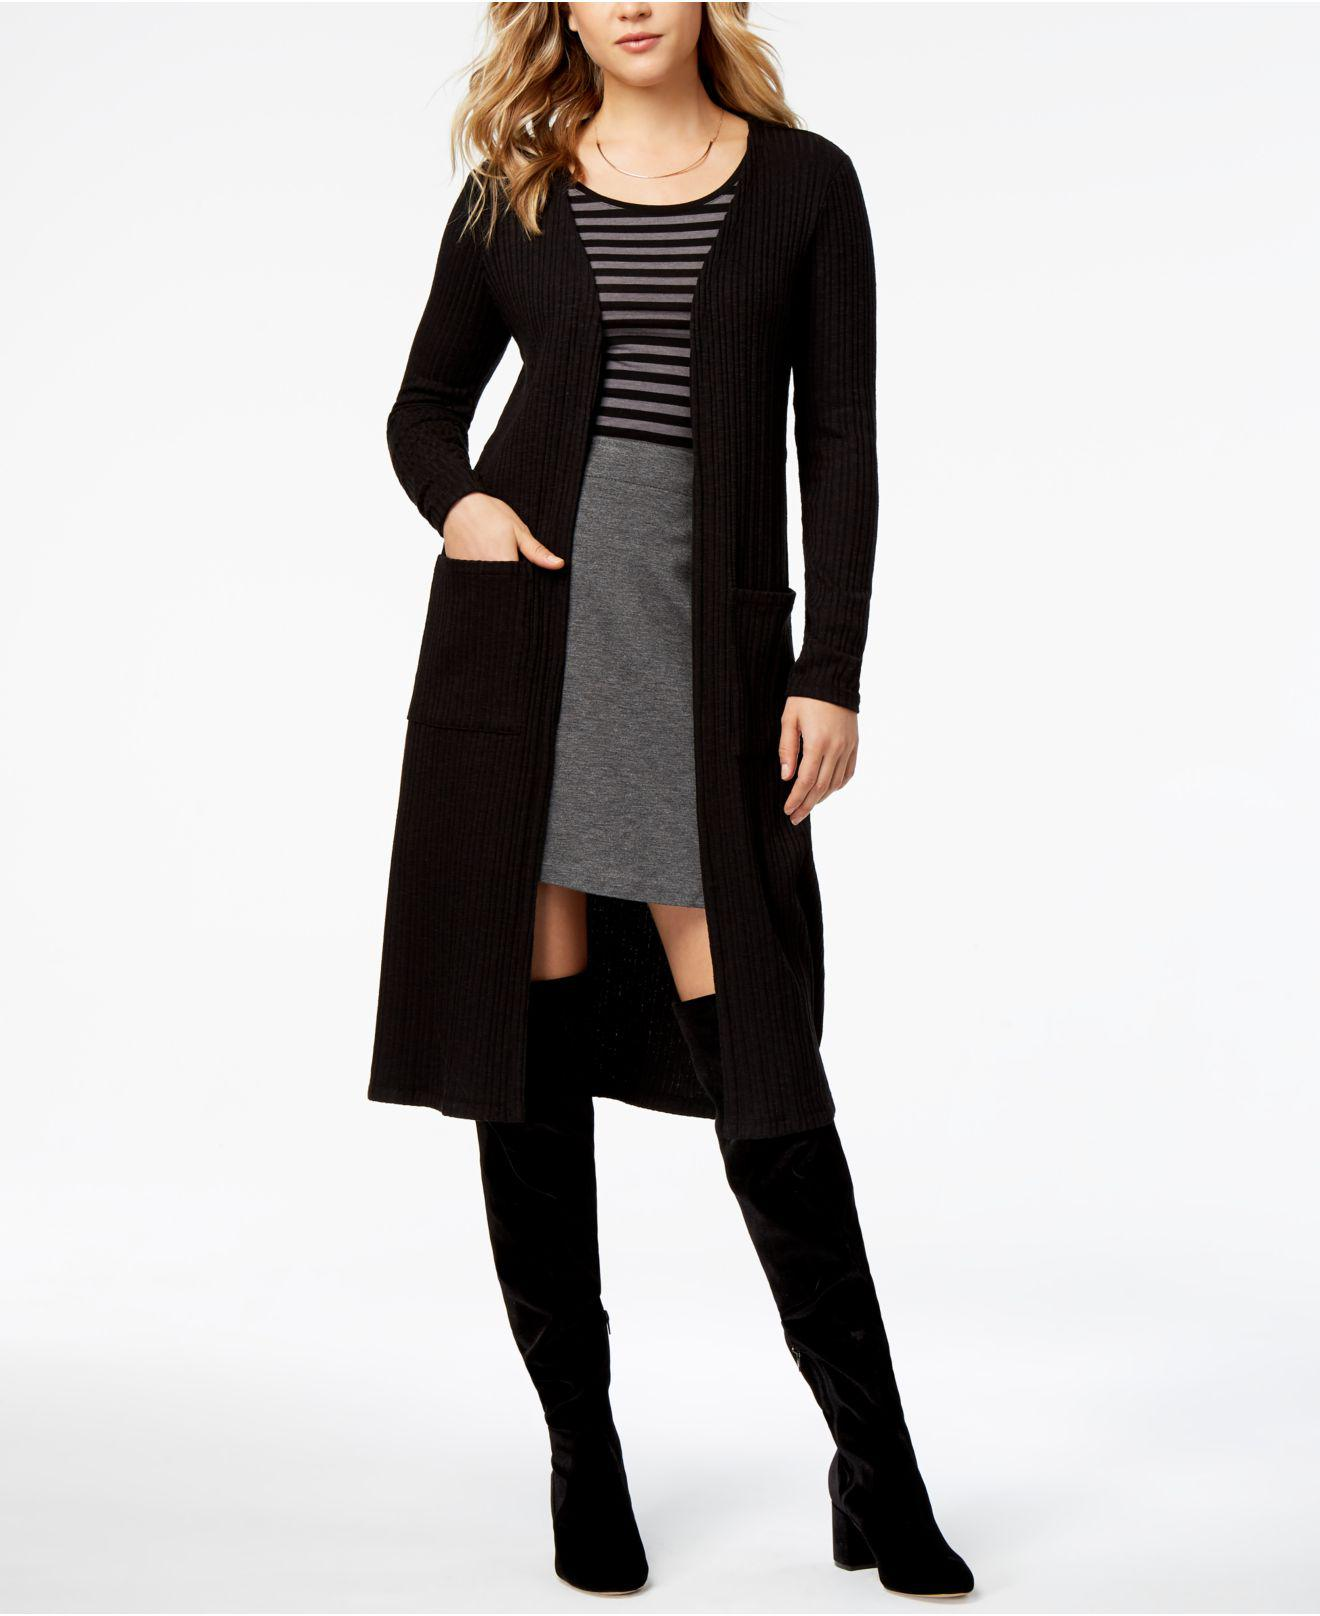 Kensie Ribbed Duster Cardigan in Black | Lyst